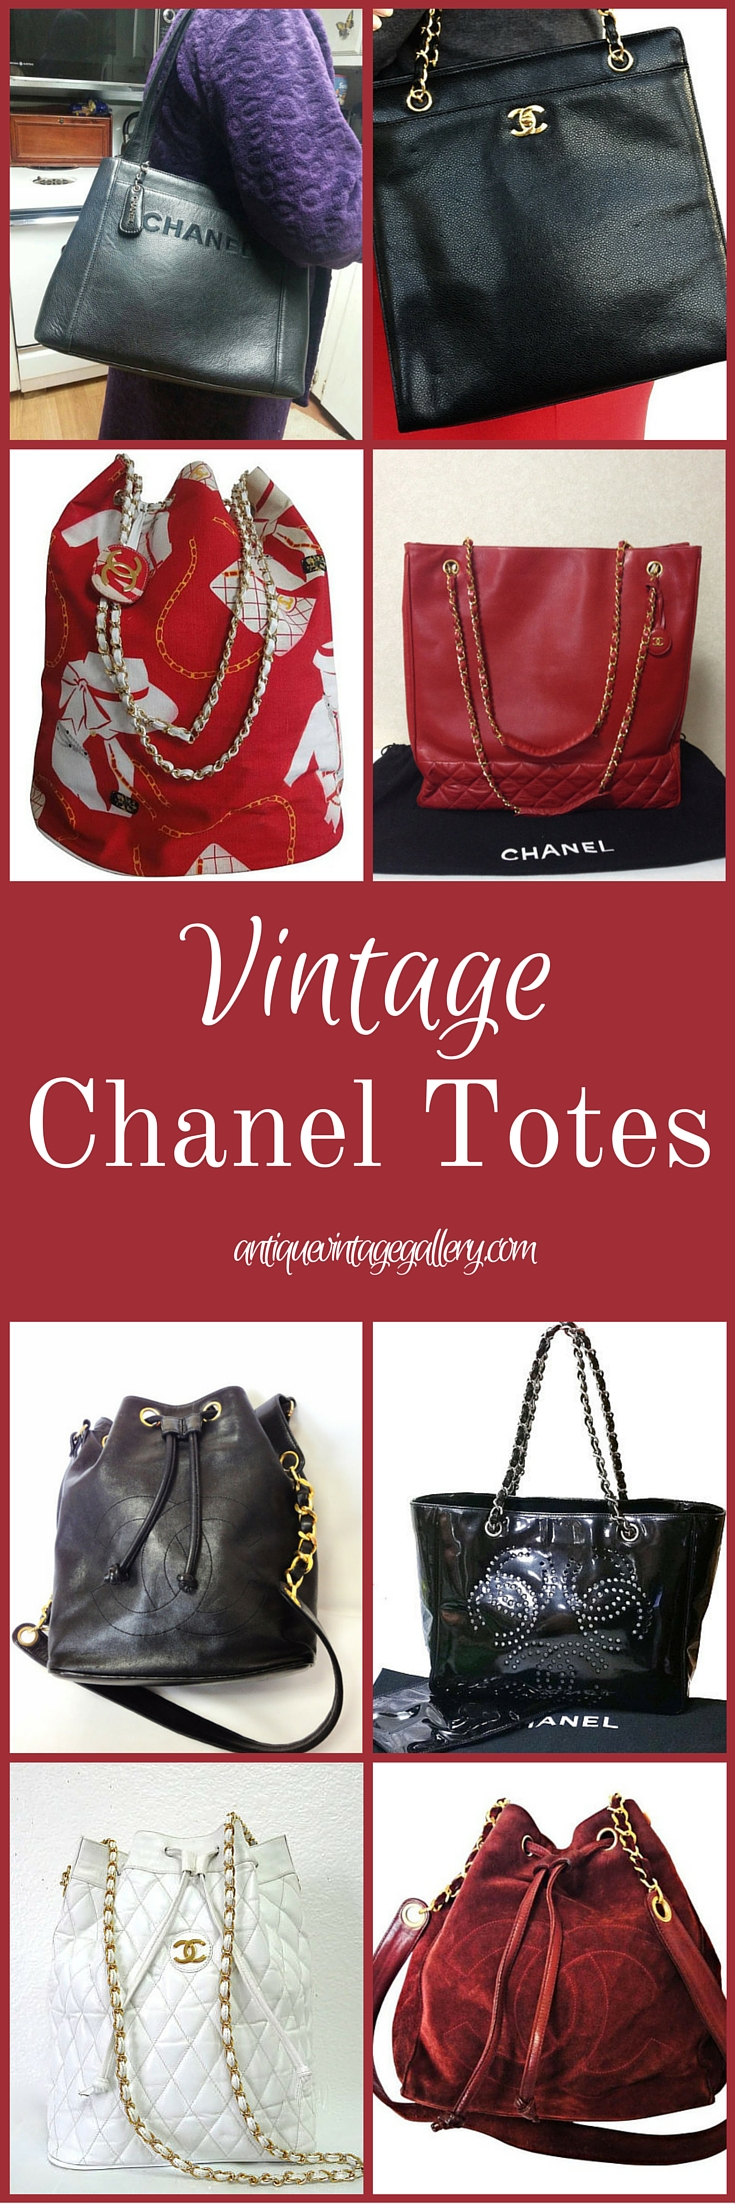 Vintage Chanel Tote Bags